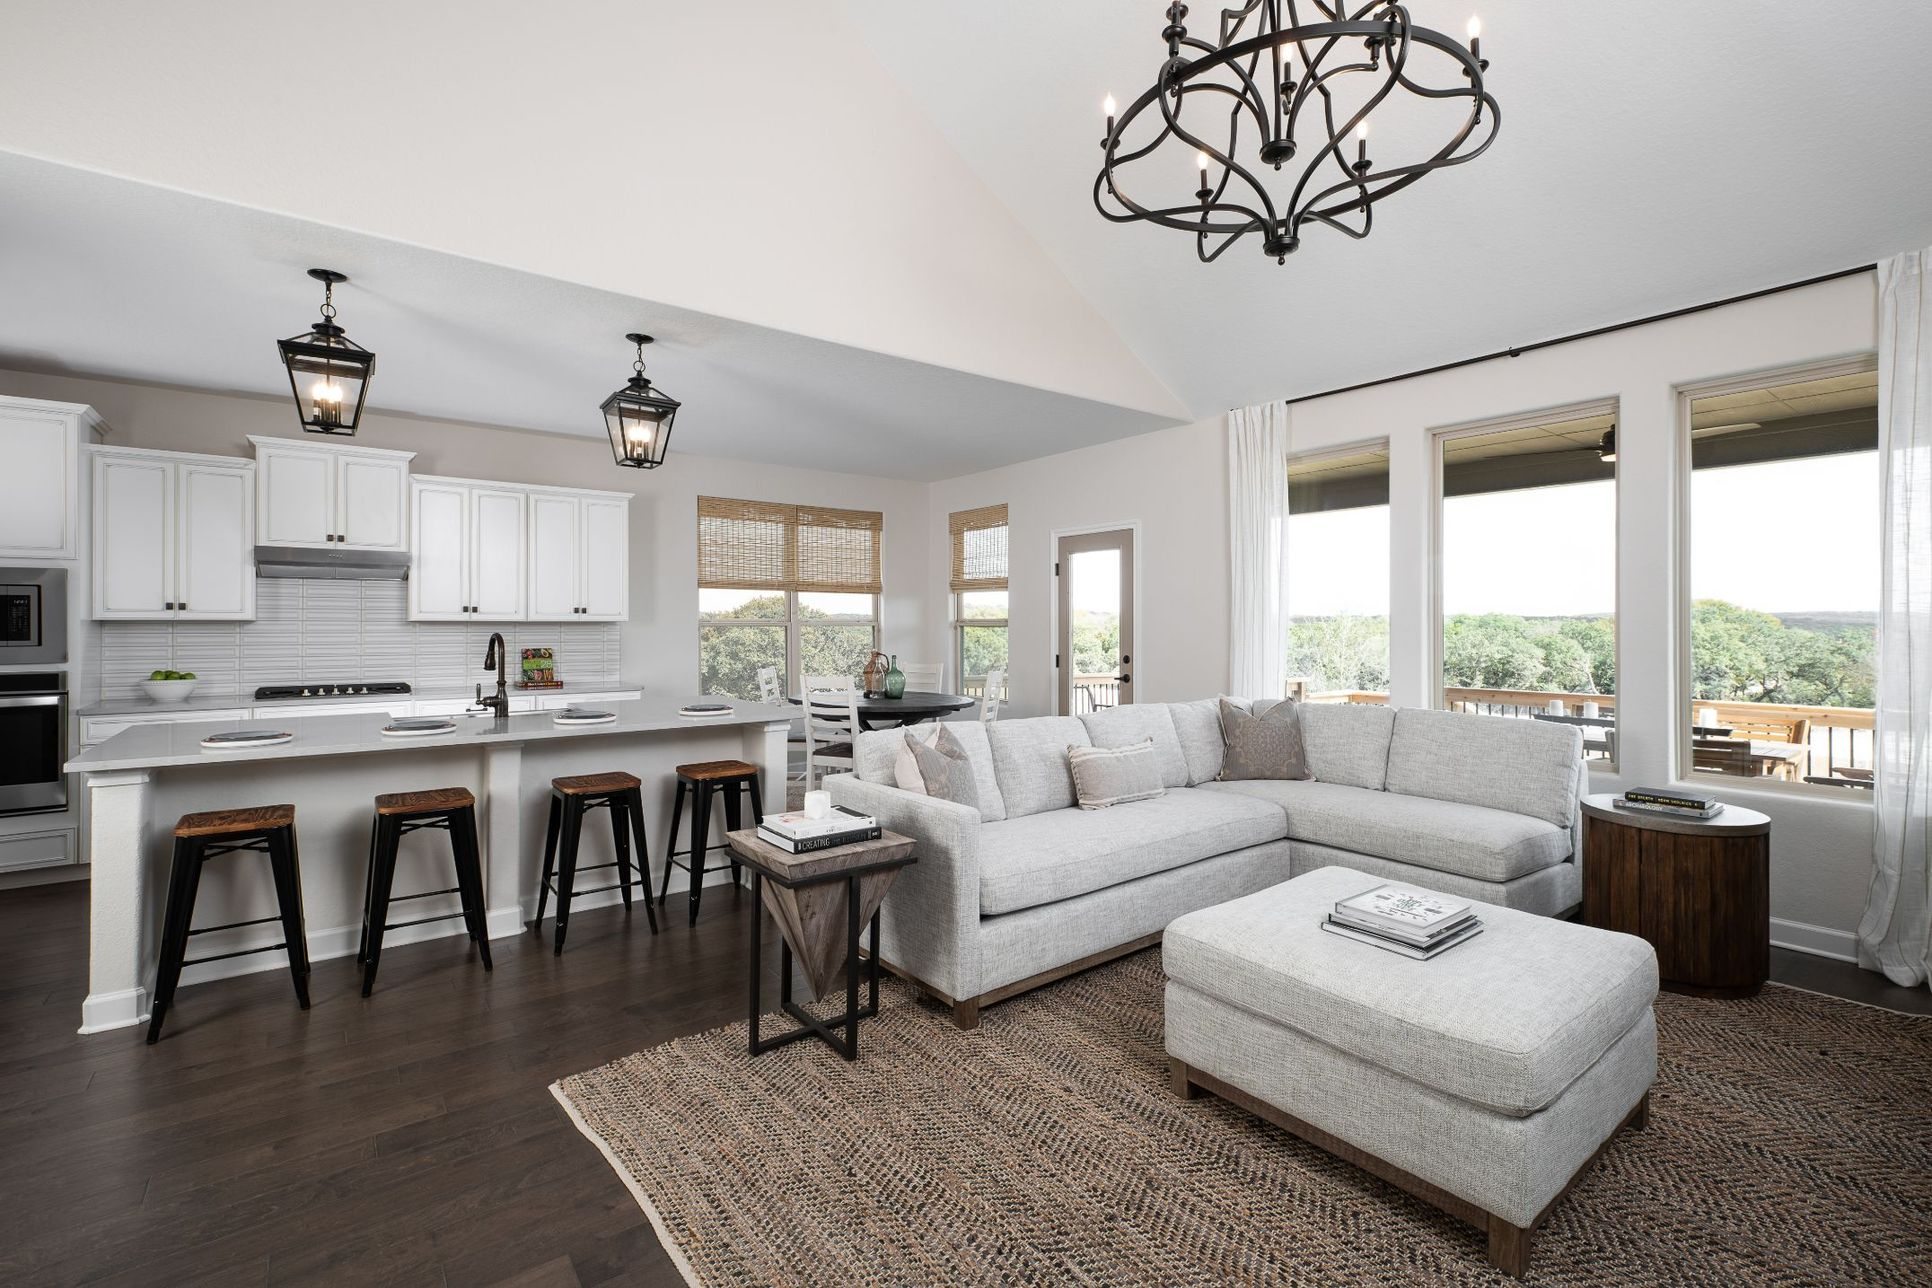 Interior:The Meadows at Imperial Oaks - Odessa Interior Image 1